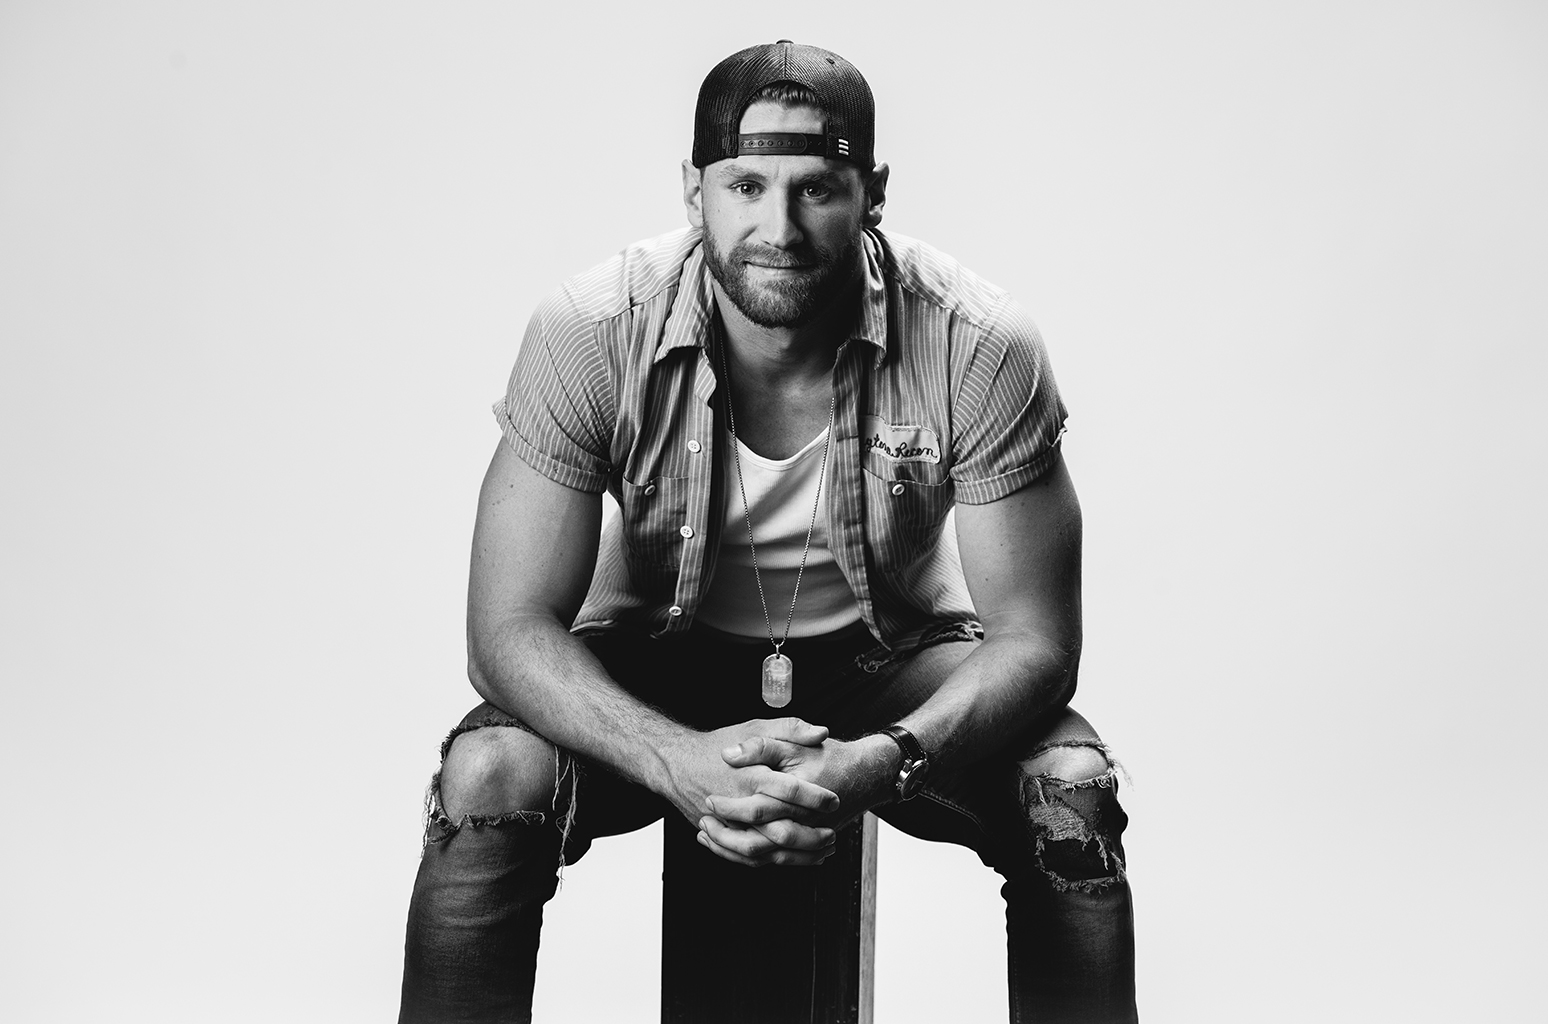 """Chase Rice   Country music maverick Chase Rice has become one of country music's most exciting figures since arriving in Nashville, building a loyal fan base across the country through his energetic live shows and gaining the attention of music critics and industry professionals alike with his edgy, eclectic sound. The Tar Heel State native released his sophomore album,  Lambs & Lions , featuring lead single and Top-20 hit """"Three Chords & the Truth"""". Follow-up single """"Eyes On You"""" has not only become the most-streamed song of Rice's career with more than 130 million streams, it also marked his first No. 1 as an artist at Country radio. His inaugural album  Ignite the Night  debuted at No. 1 on  Billboard 's Top Country Albums and No. 3 on the all-genre chart, and produced a pair of Top 5 hits, the Platinum-certified """"Ready Set Roll"""" and """"Gonna Wanna Tonight."""" After supporting Kenny Chesney's  The Big Revival Tour , Rice consistently sold out 2500-3000 seat venues on his headlining  JD and Jesus Tour, Everybody We Know Does Tour  and  Lambs & Lions Tour . He recently served as direct support on the  Luke Bryan Farm Tour 2018  and headlined a U.K. run in advance of his highly-anticipated  Eyes On You Tour,  currently underway."""